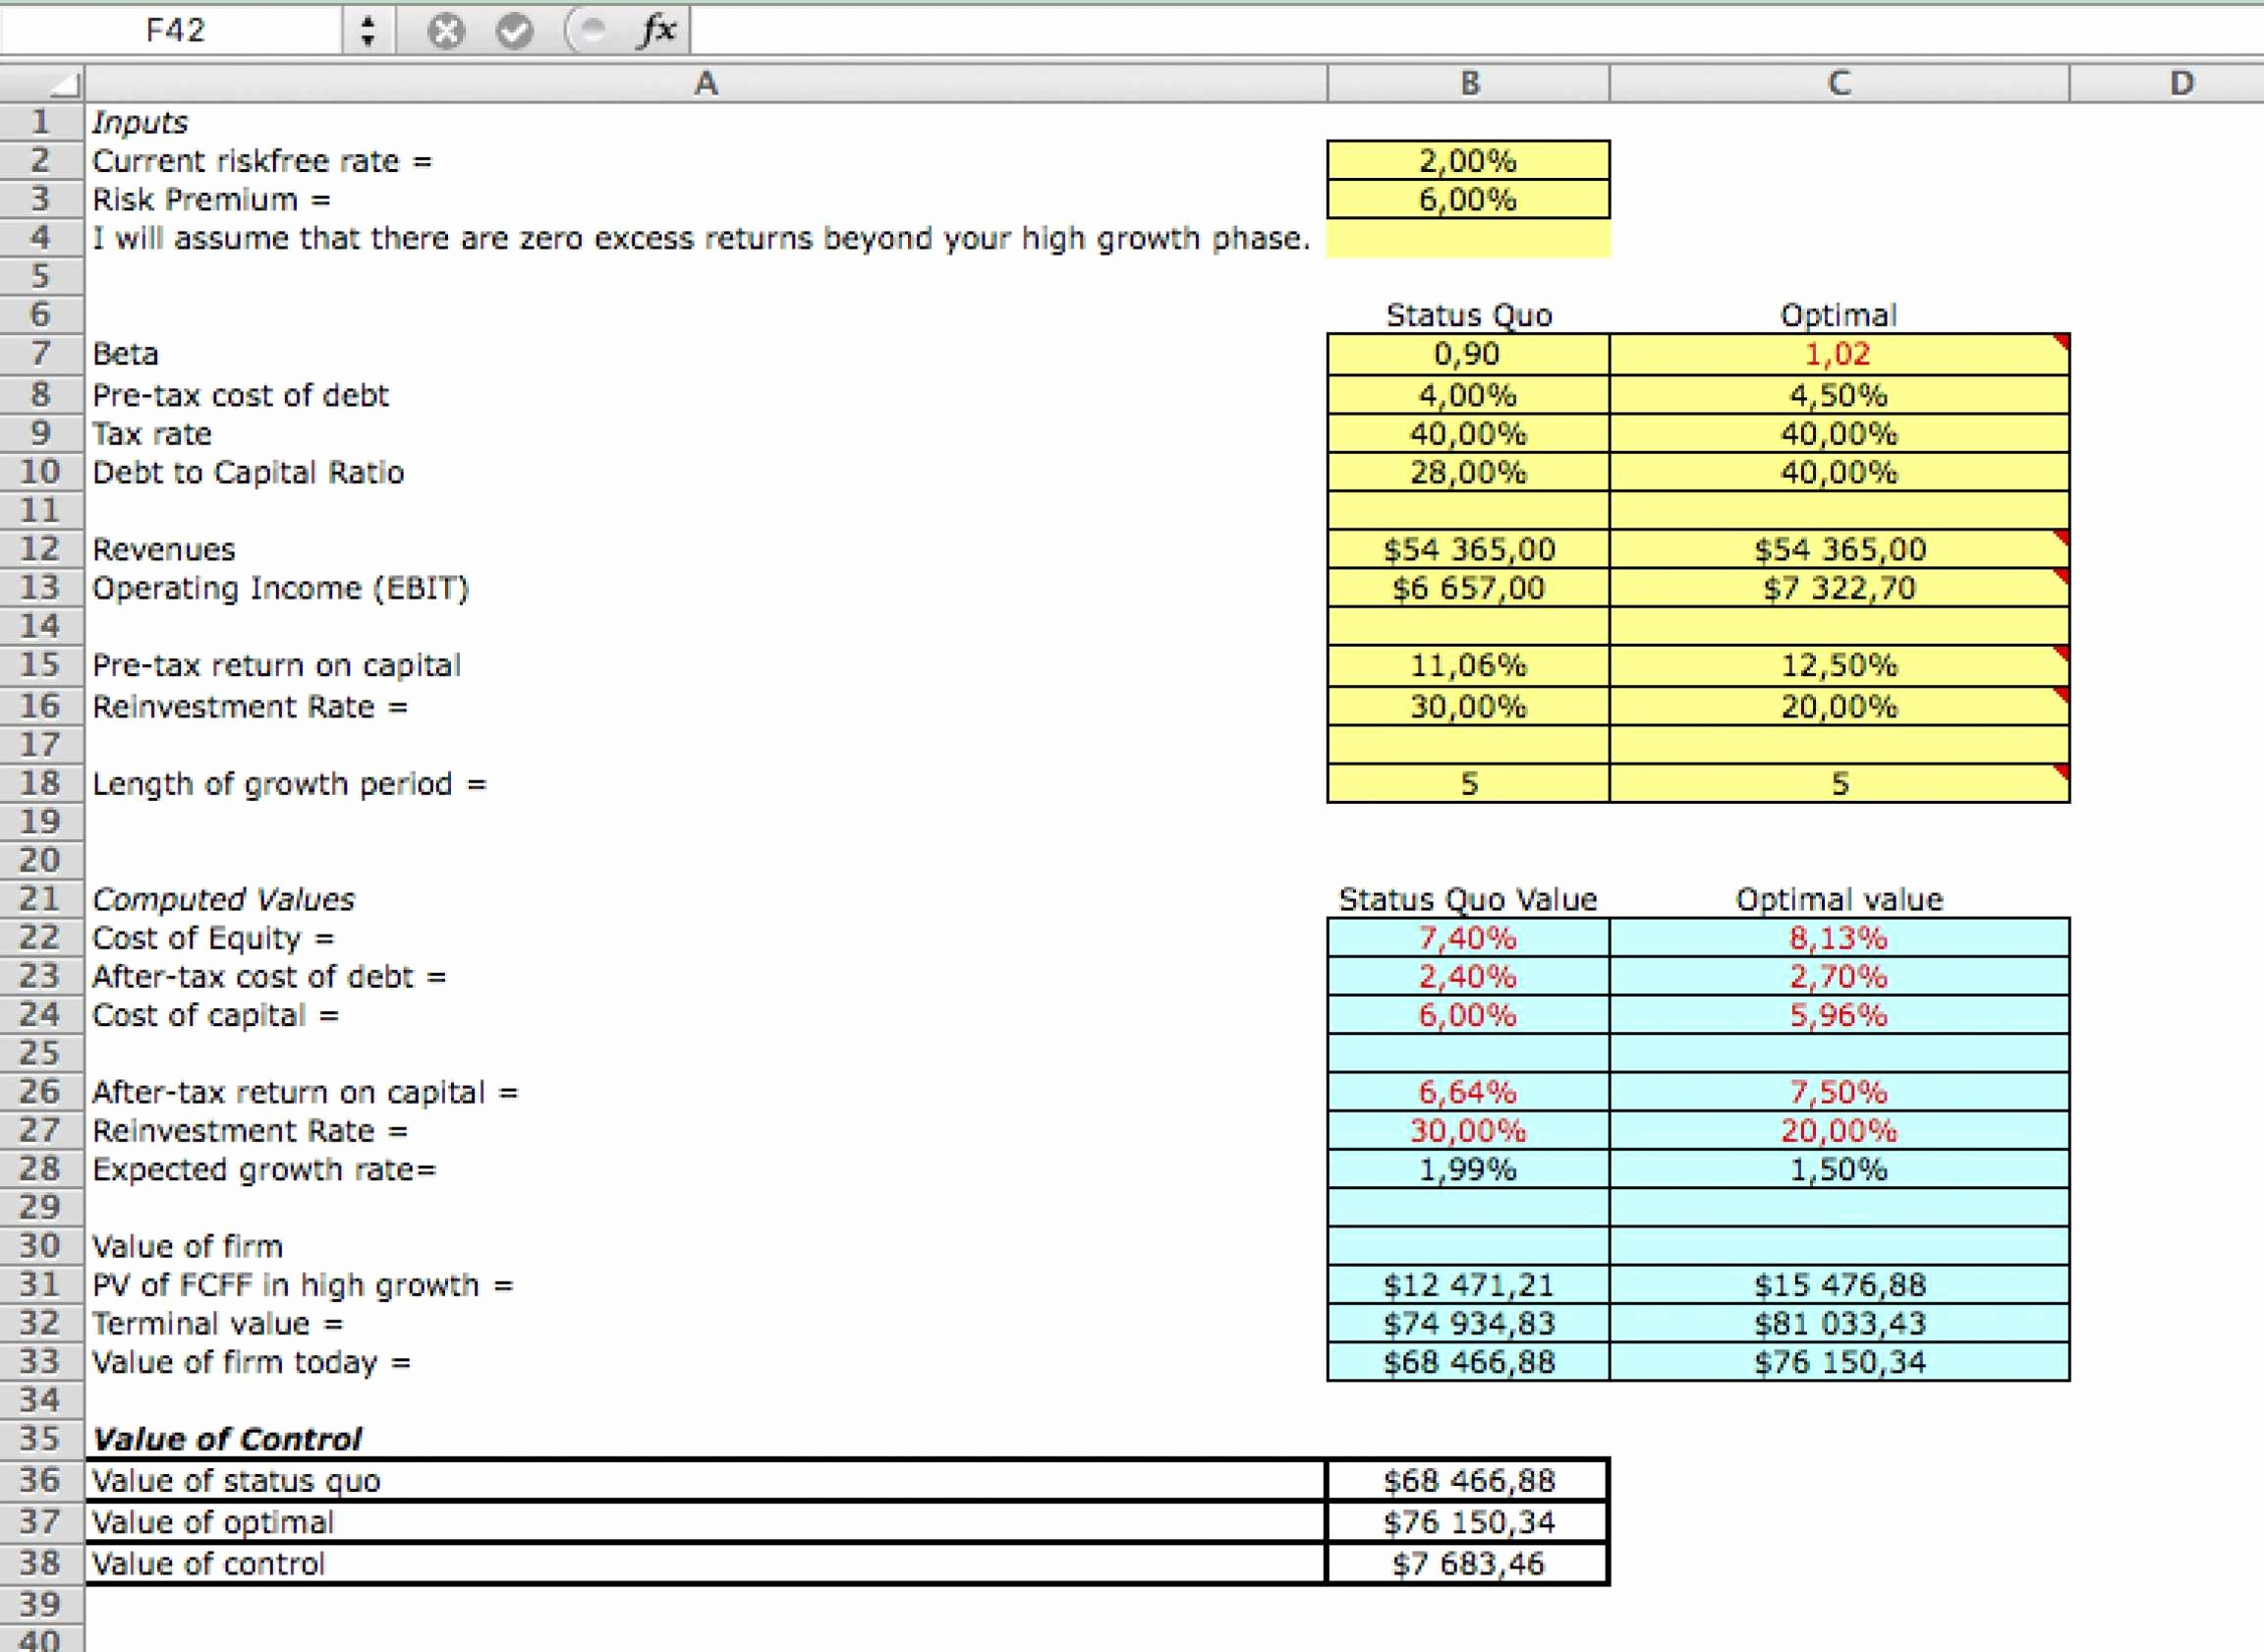 Computer Hardware Inventory Excel Template Inspirational Inventory Intended For Hardware Inventory Management Excel Template